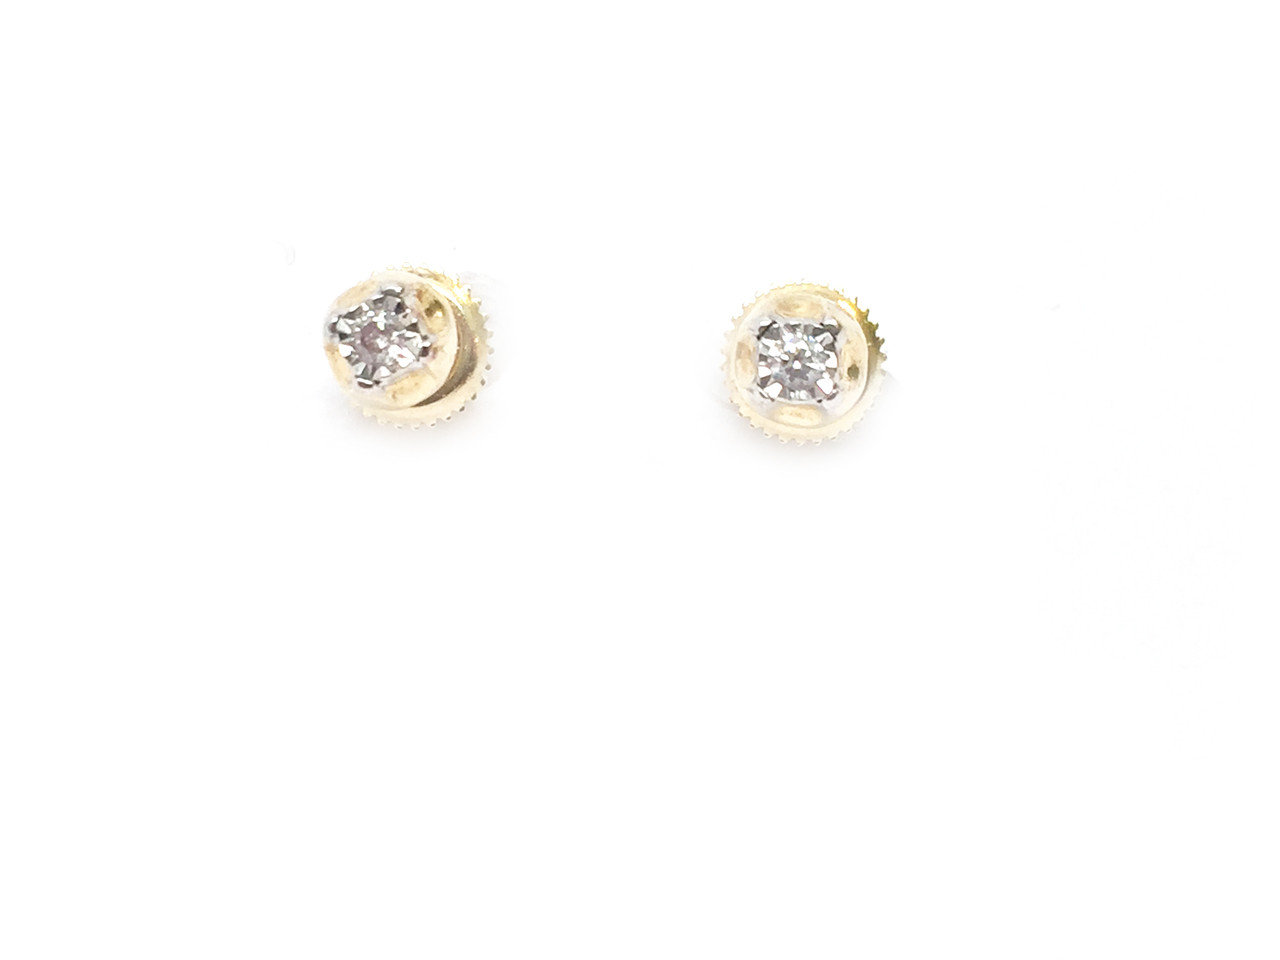 threader earrings in shipping free today gold stud jewelry eternity drop product watches ball overstock